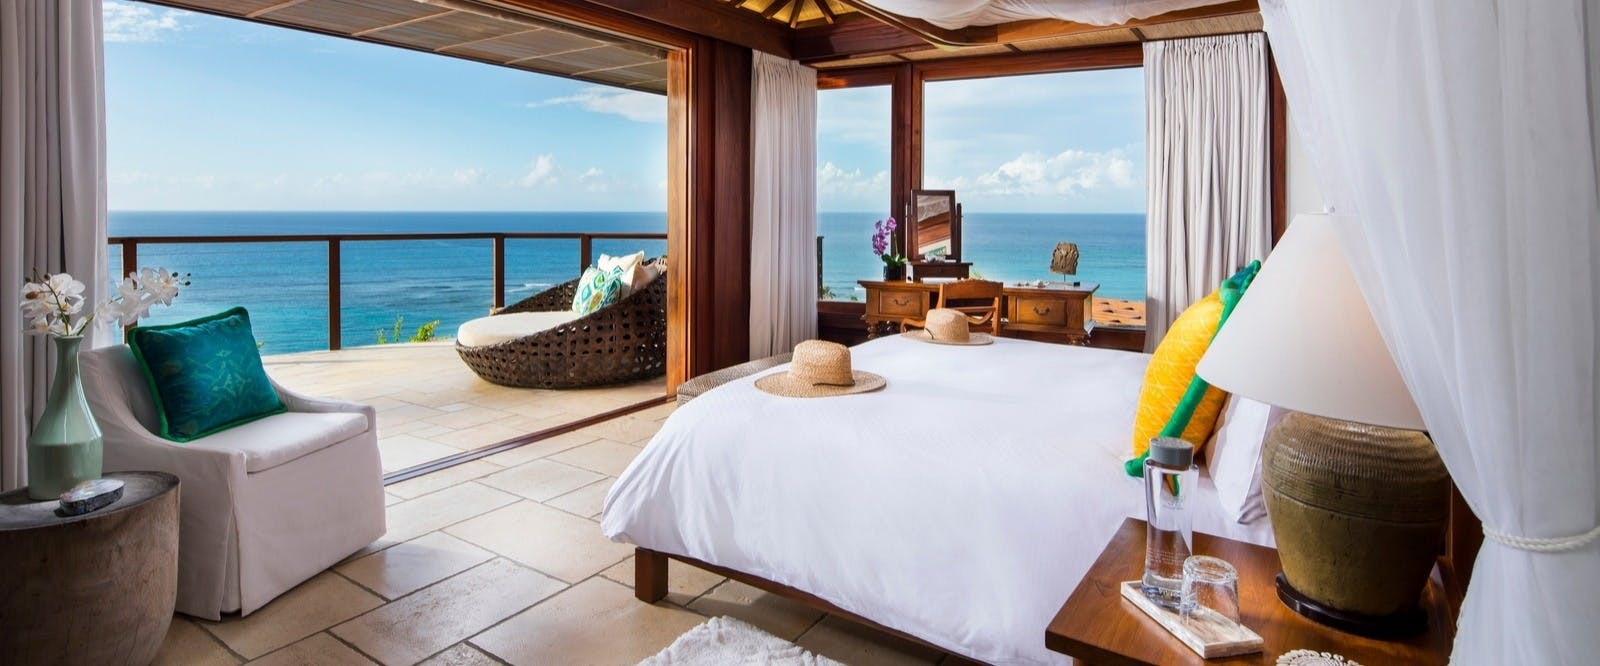 The Great House room at Necker Island, British Virgin Islands